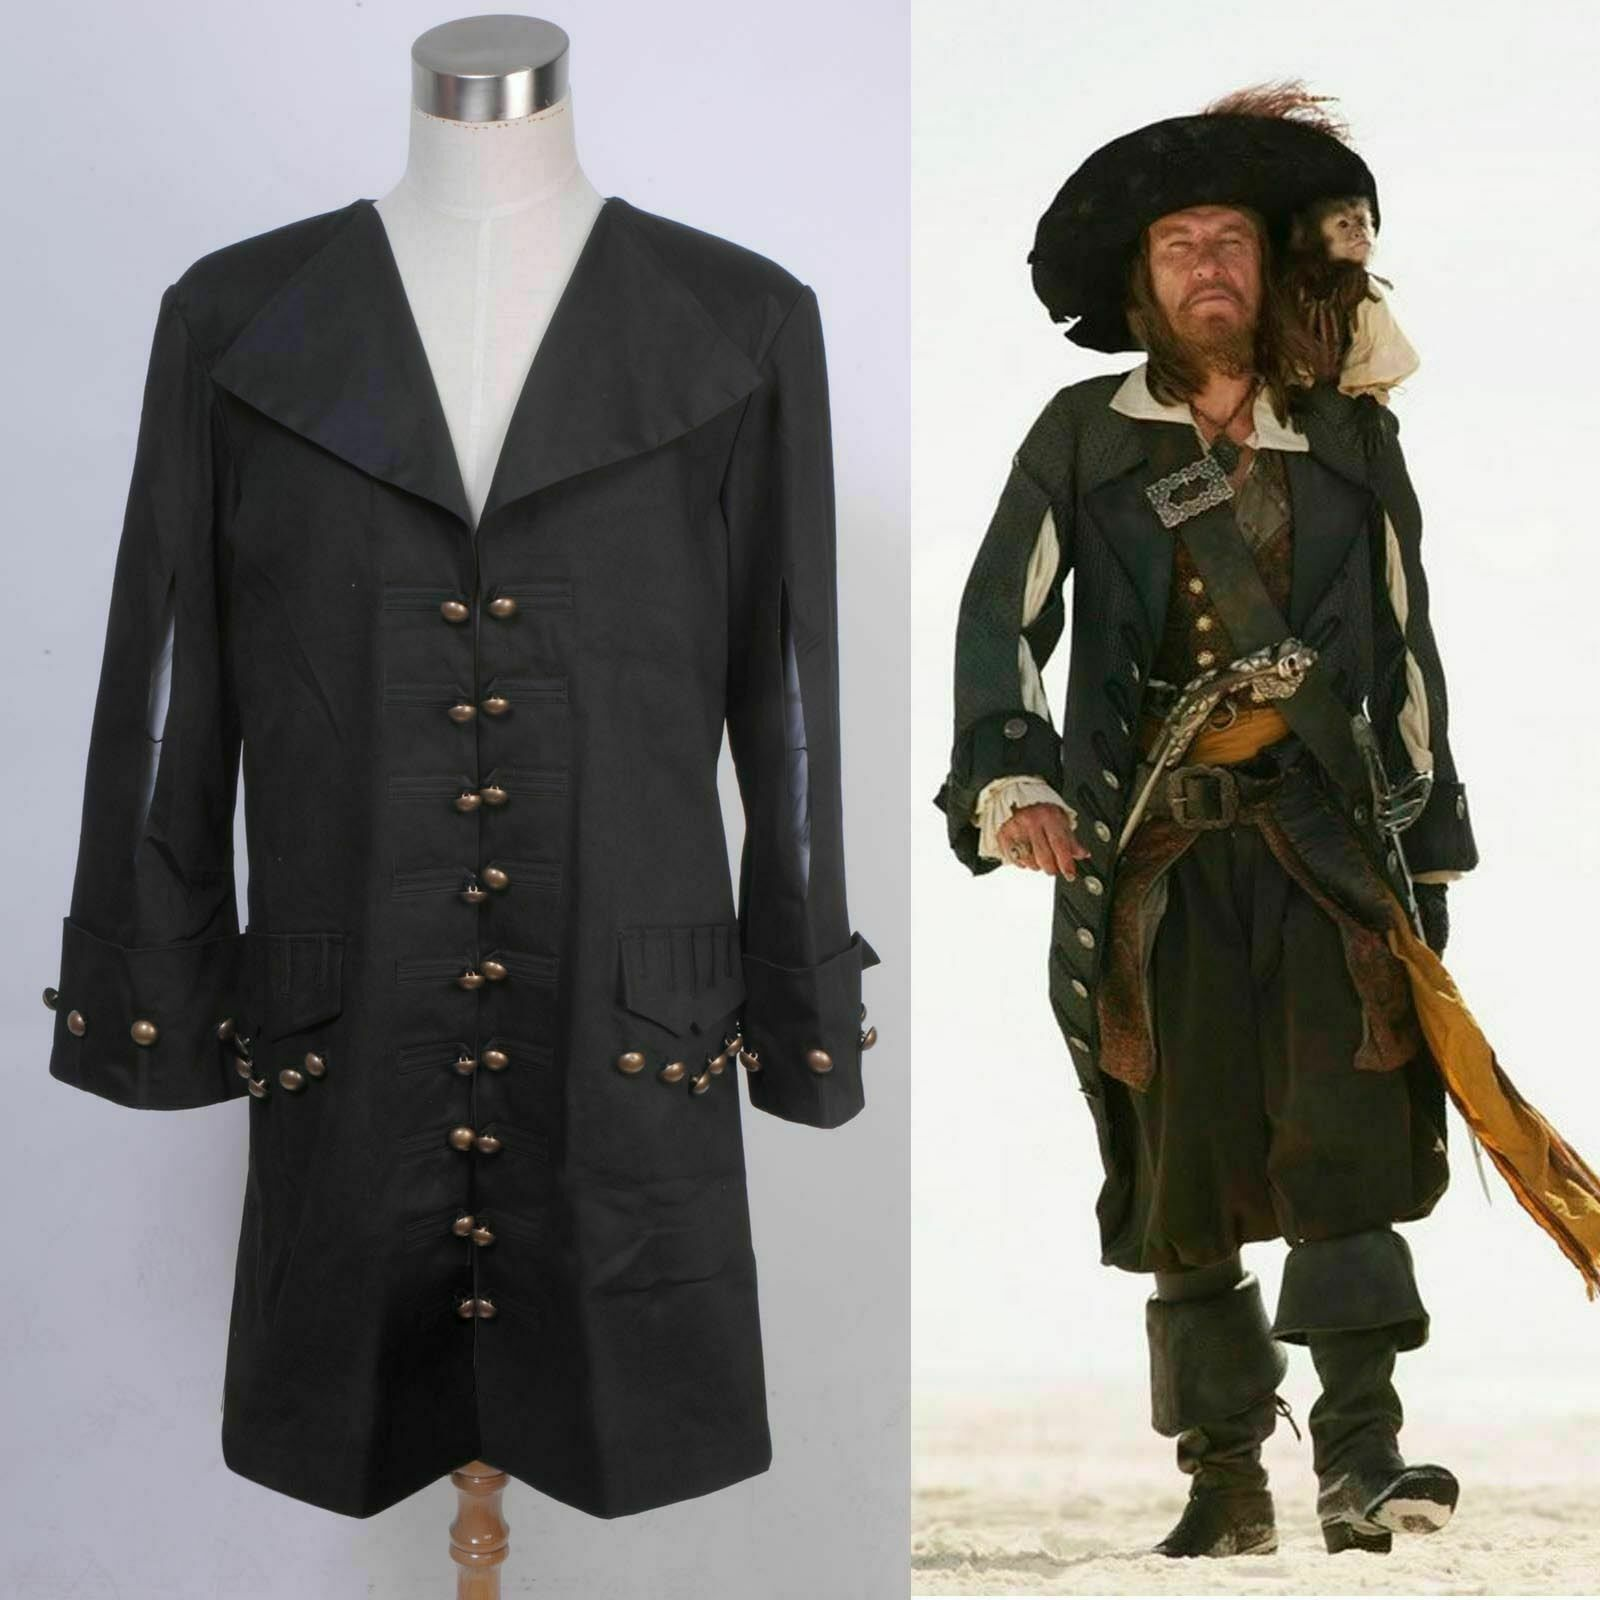 Pirates of the Caribbean Barbossa Jacket Outfit Cosplay Costume Halloween